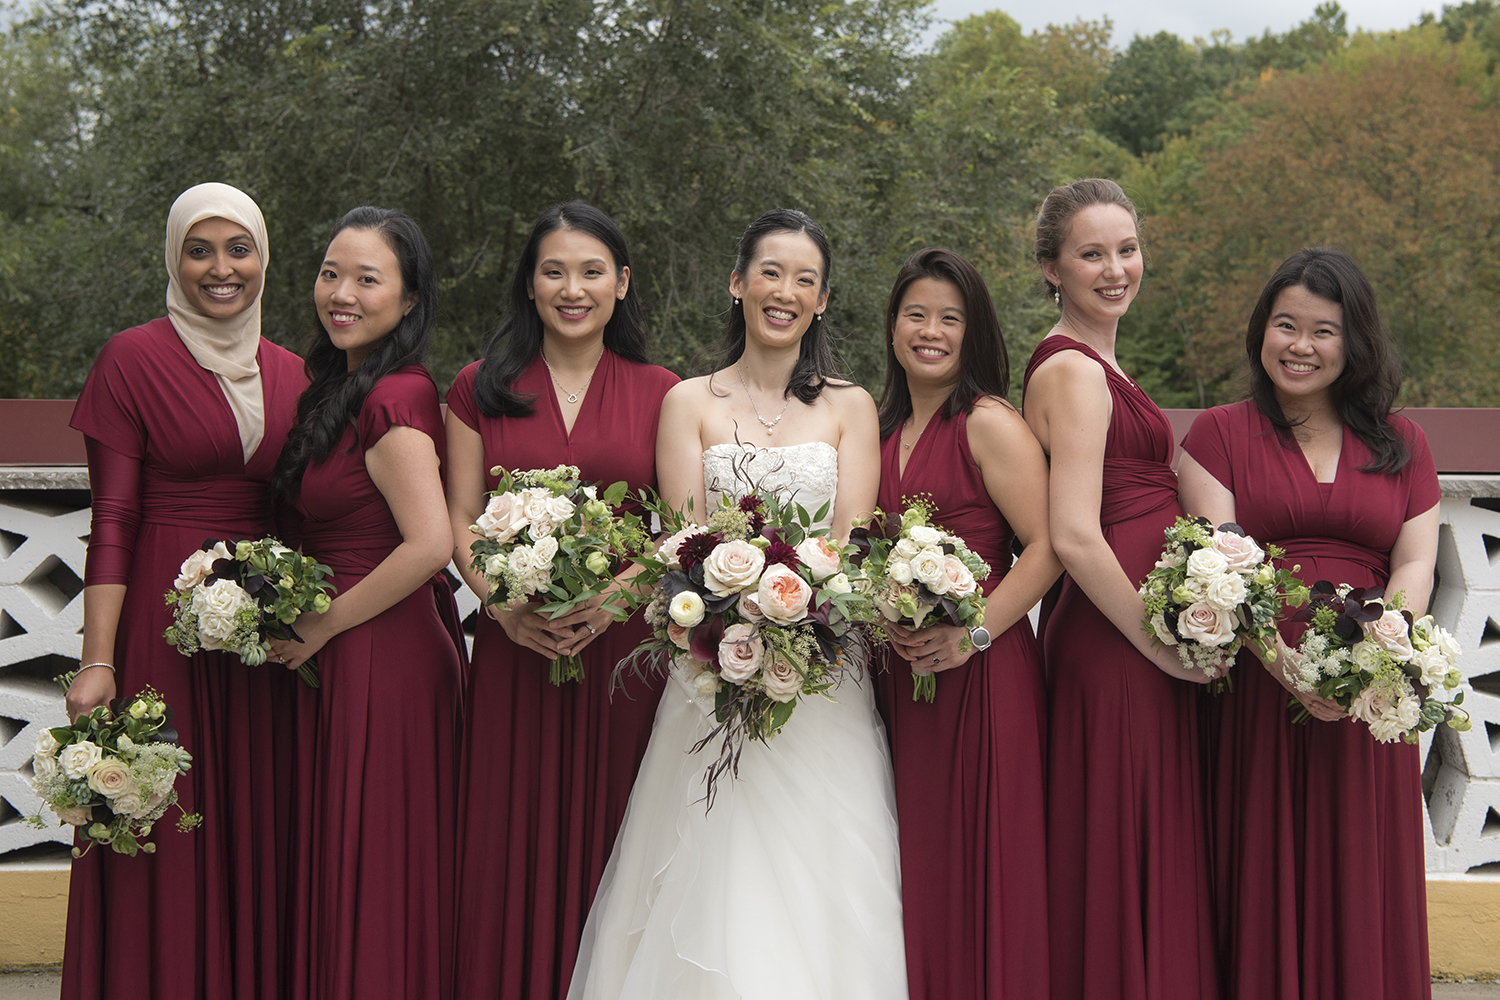 Diverse bridal party dressed in burgundy